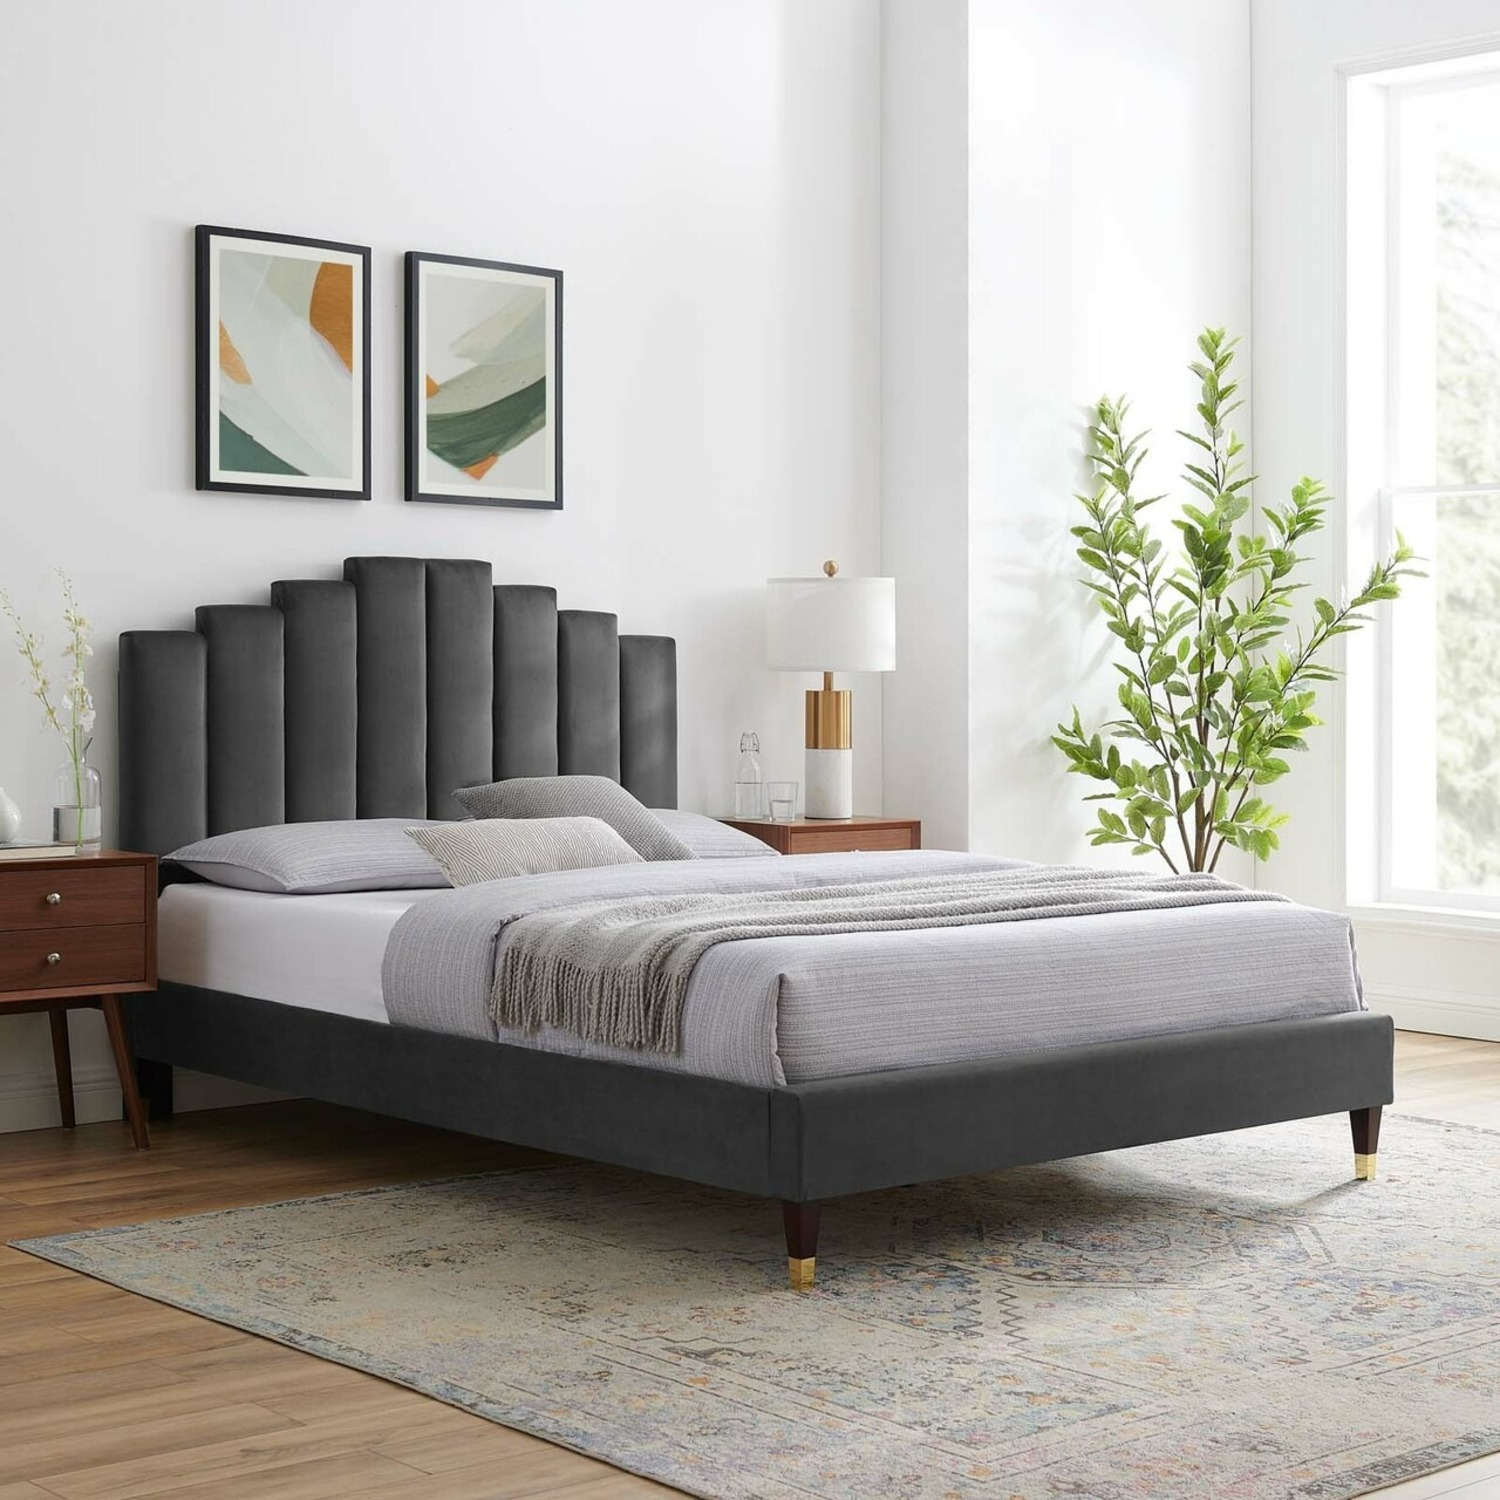 Twin Bed In Charcoal Fabric W/ Dense Foam Padding - image-12